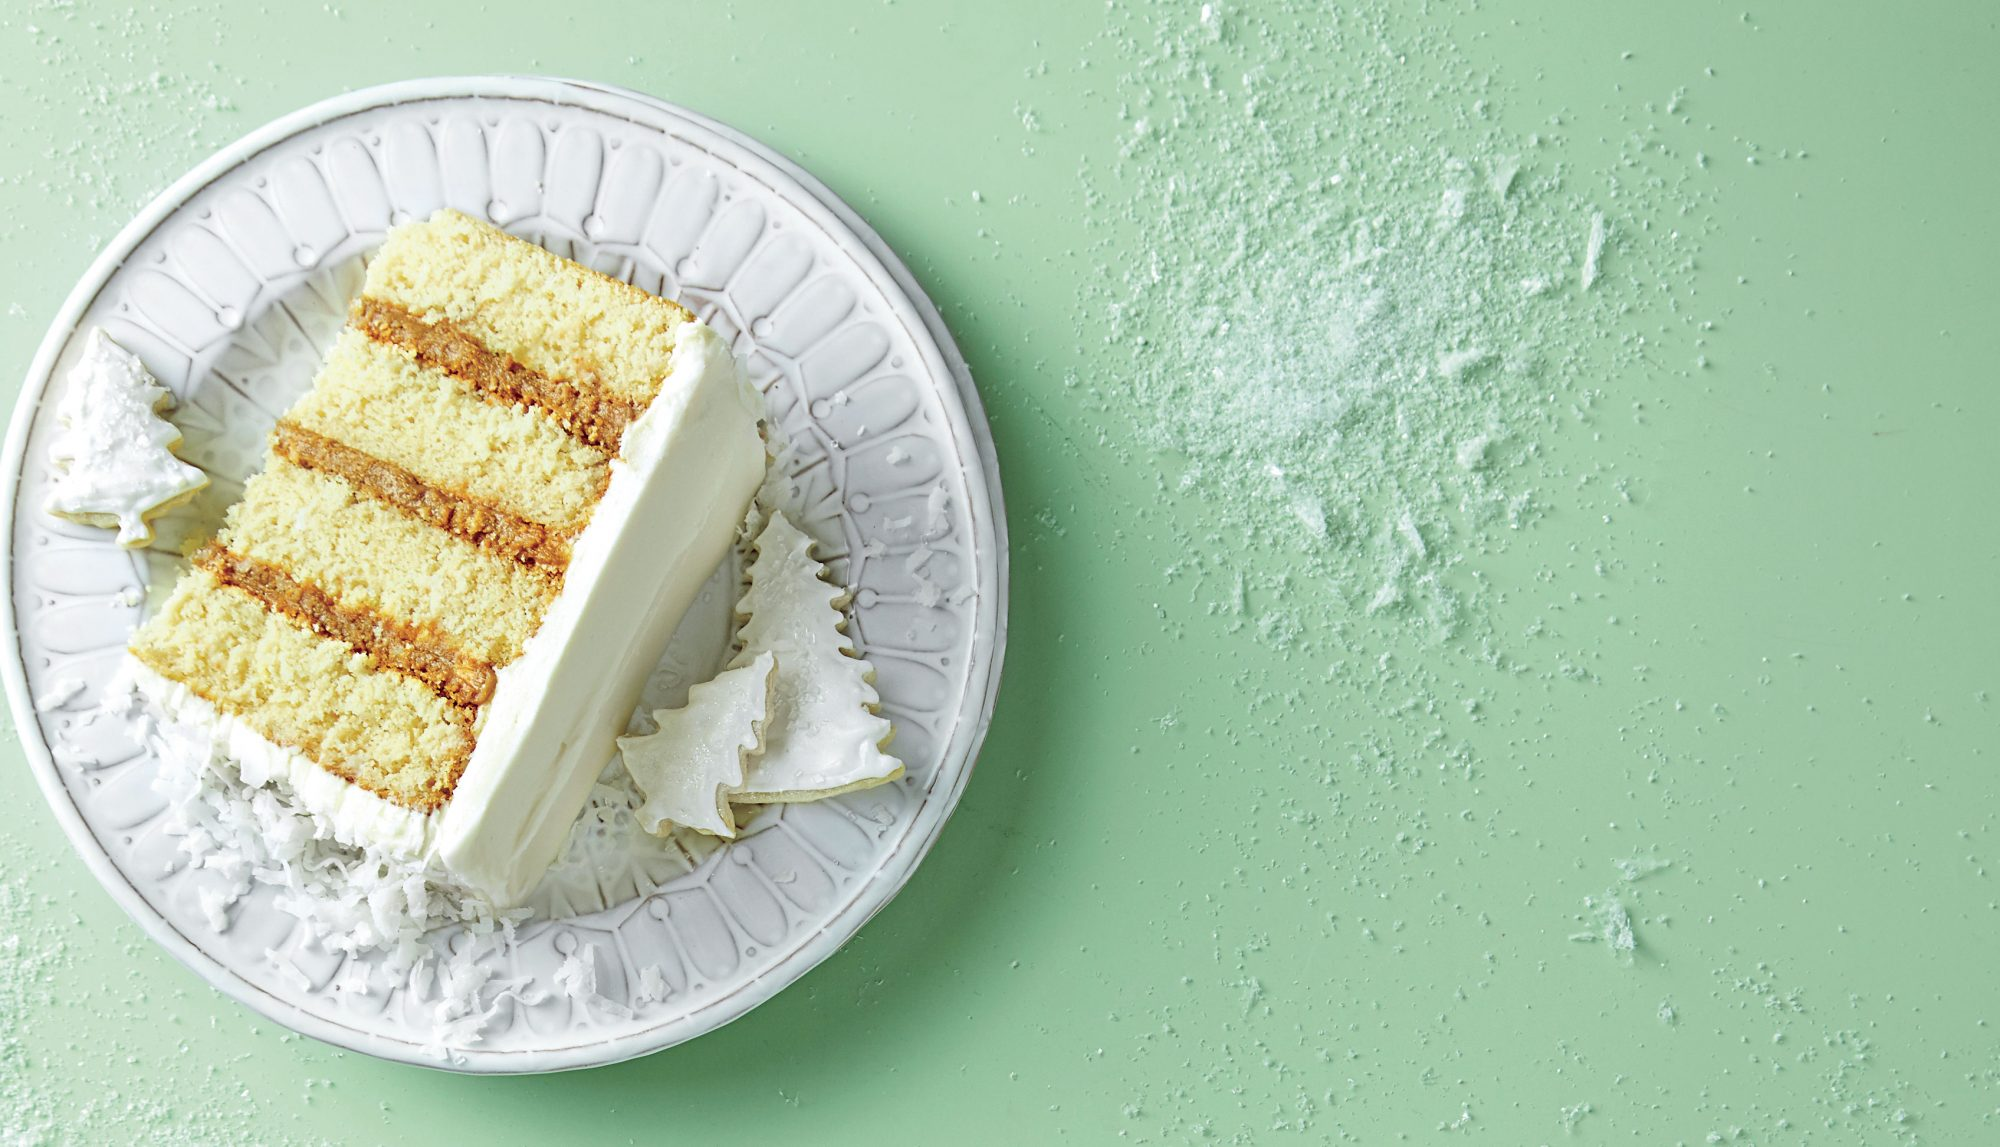 Ermine Frosting on Cake